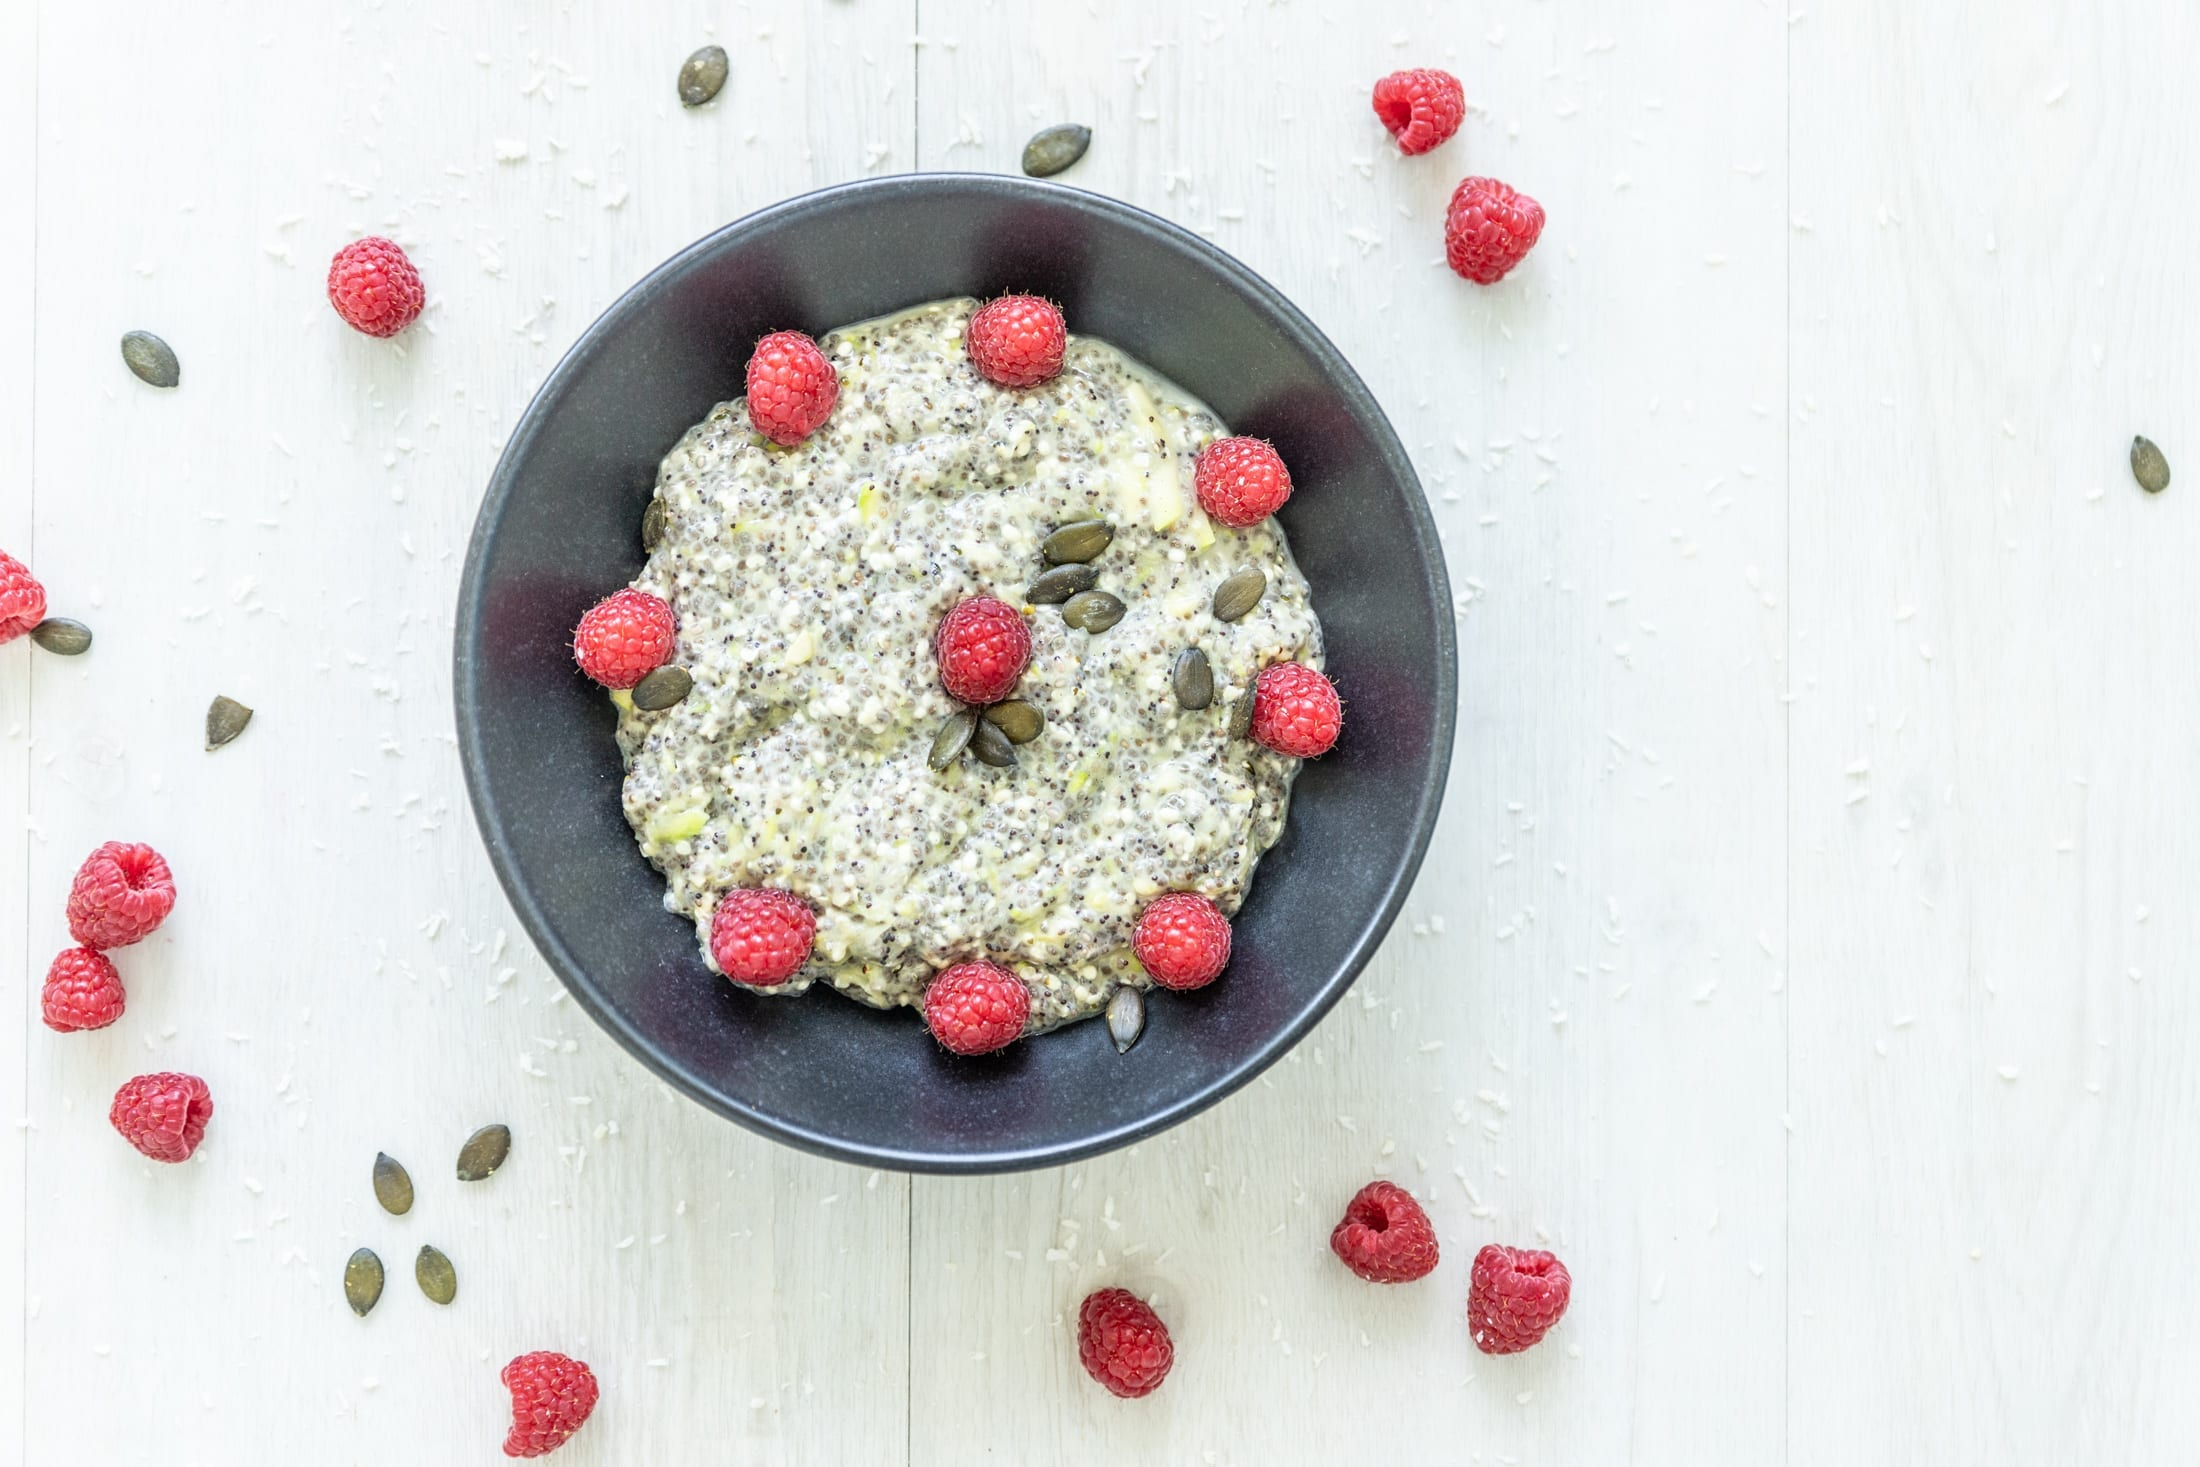 Zucchini-Chia-Porridge low carb